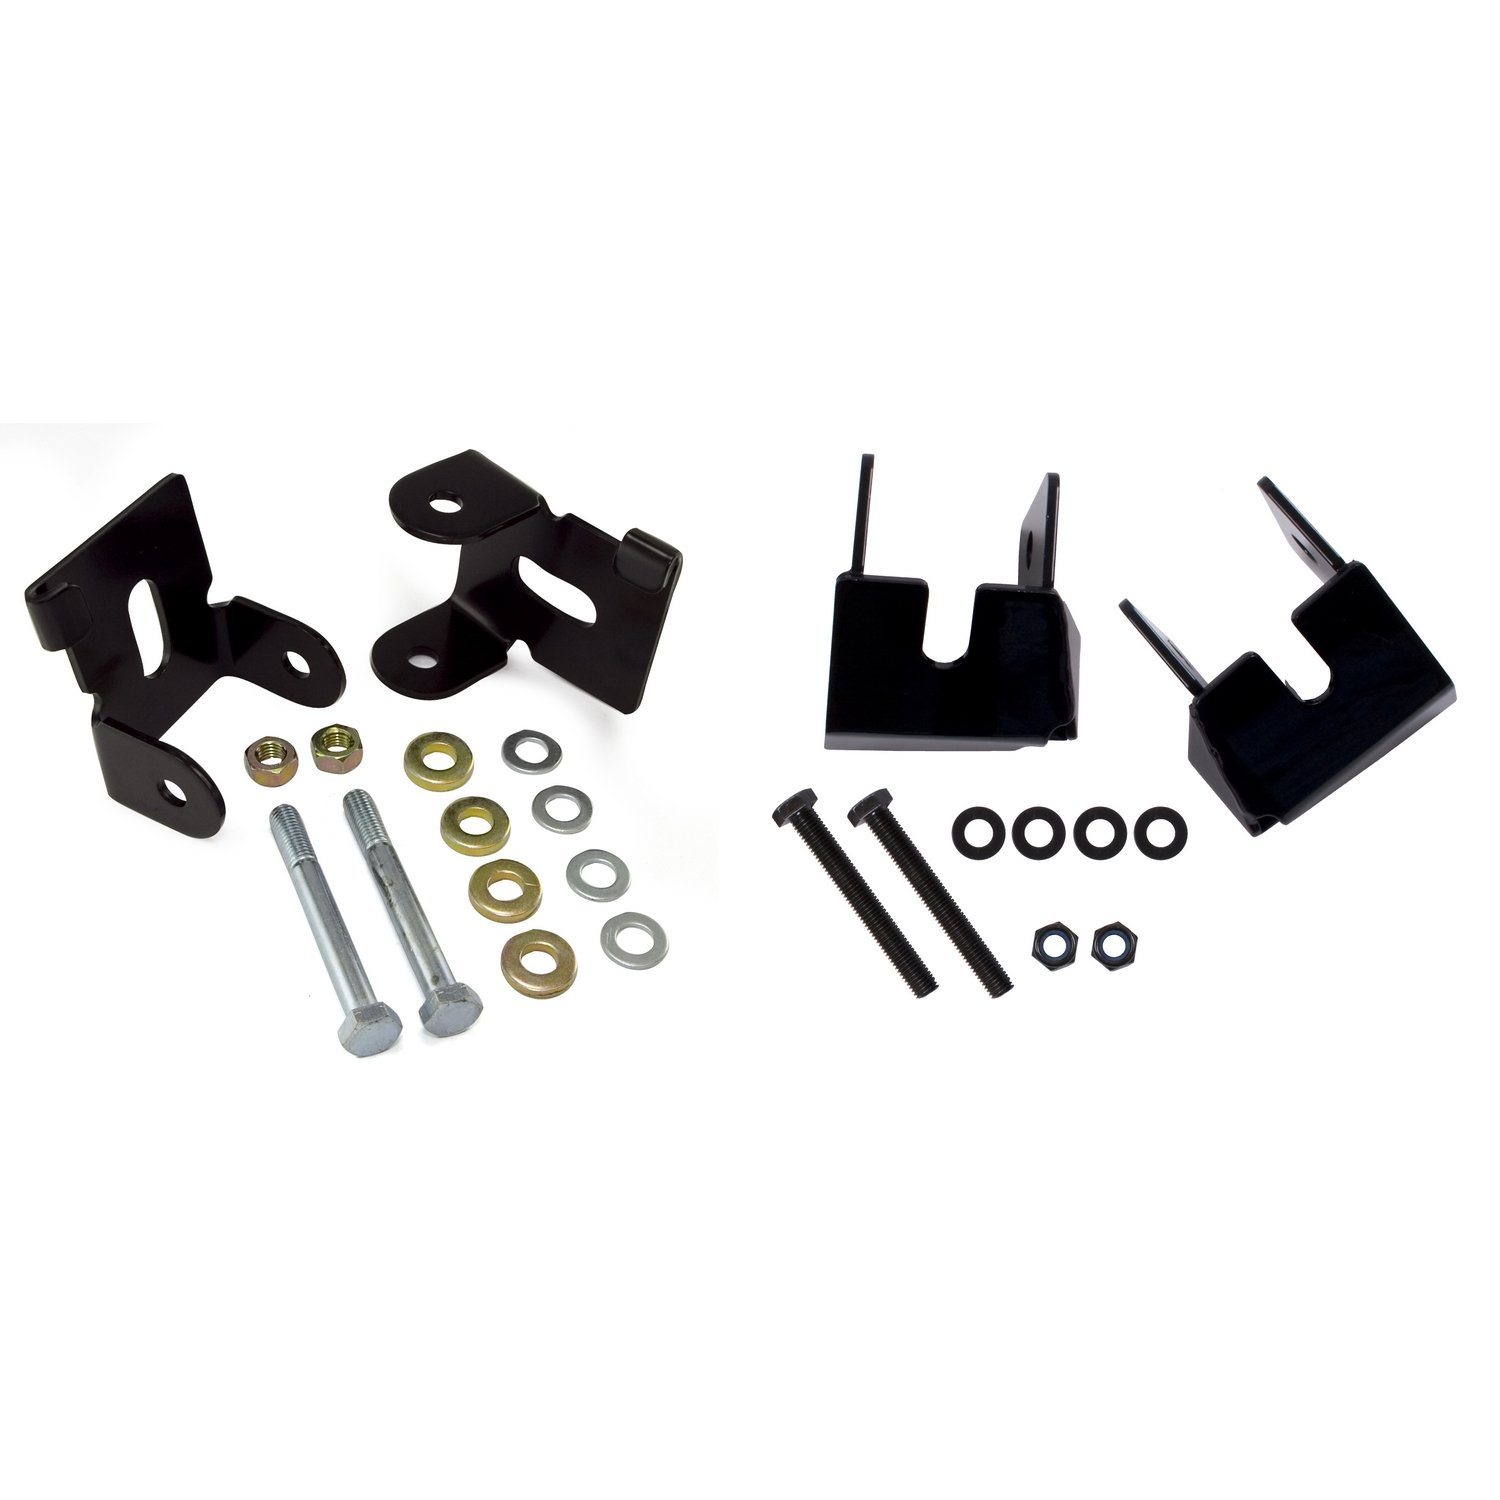 Rugged Ridge 18003.37 Black Control Arm Skid Plate Kit for 07 Up Wrangler JK - 4-Piece